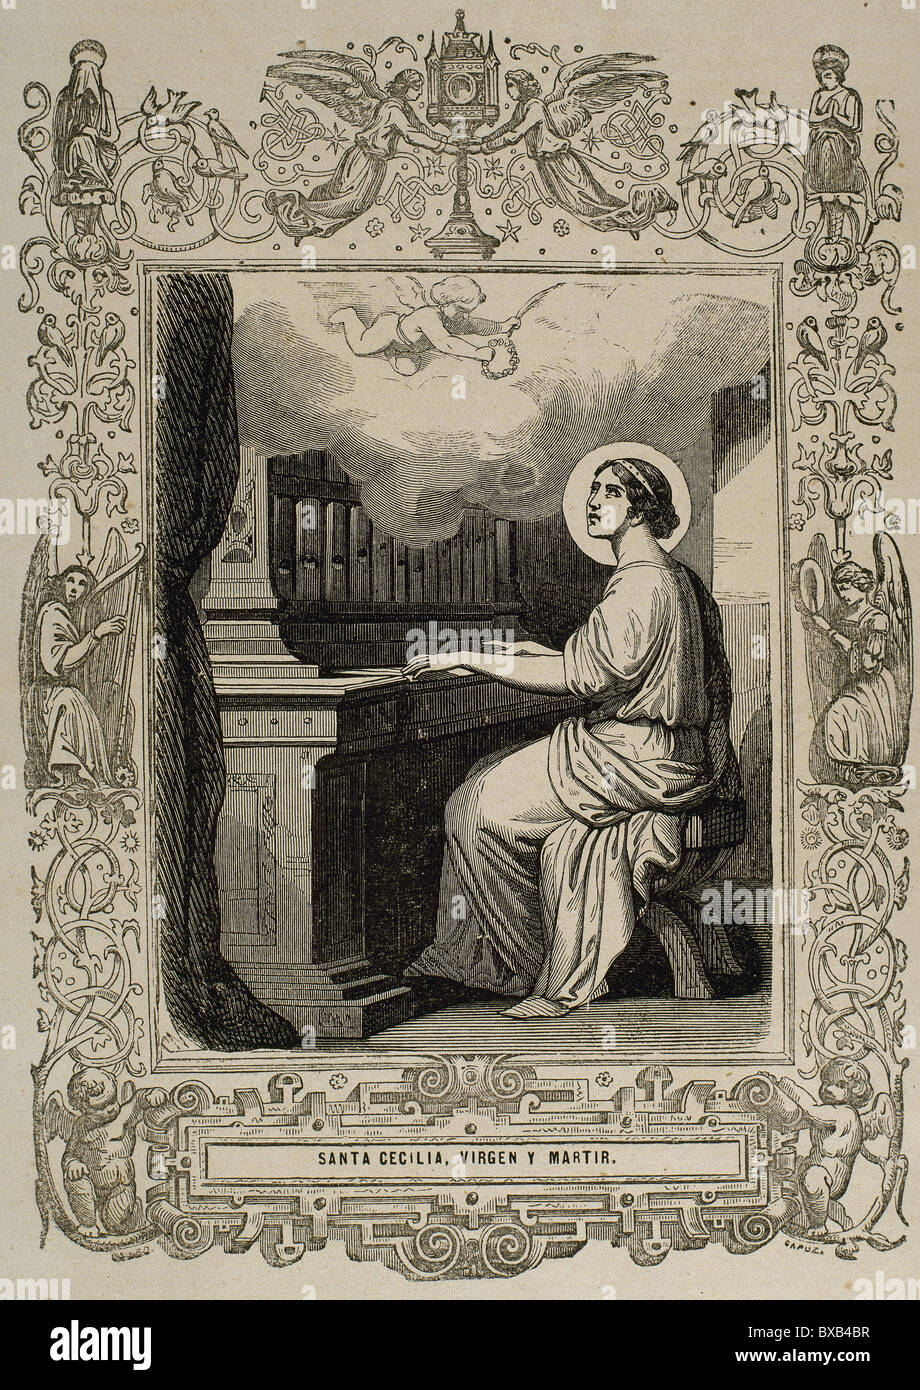 Saint Cecilia of Rome. 2nd century A.C. Roman martyr. Engraving by Capuz. - Stock Image